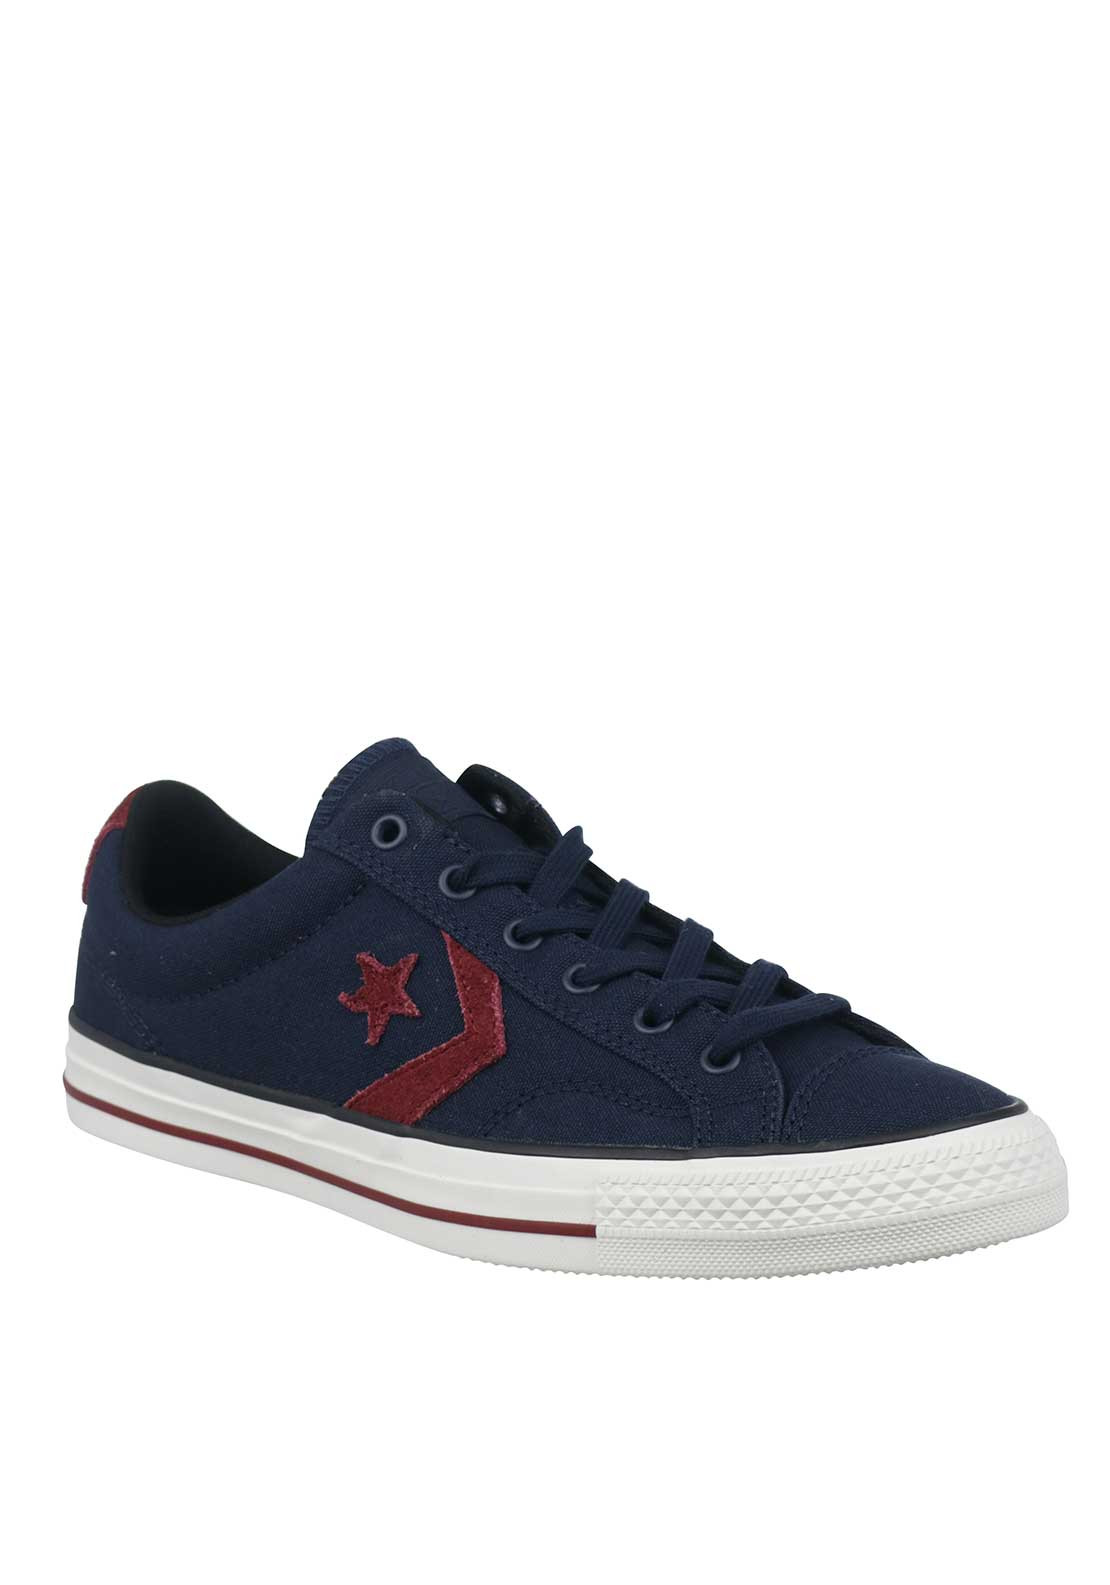 Converse Cons Mens Canvas Trainers, Navy